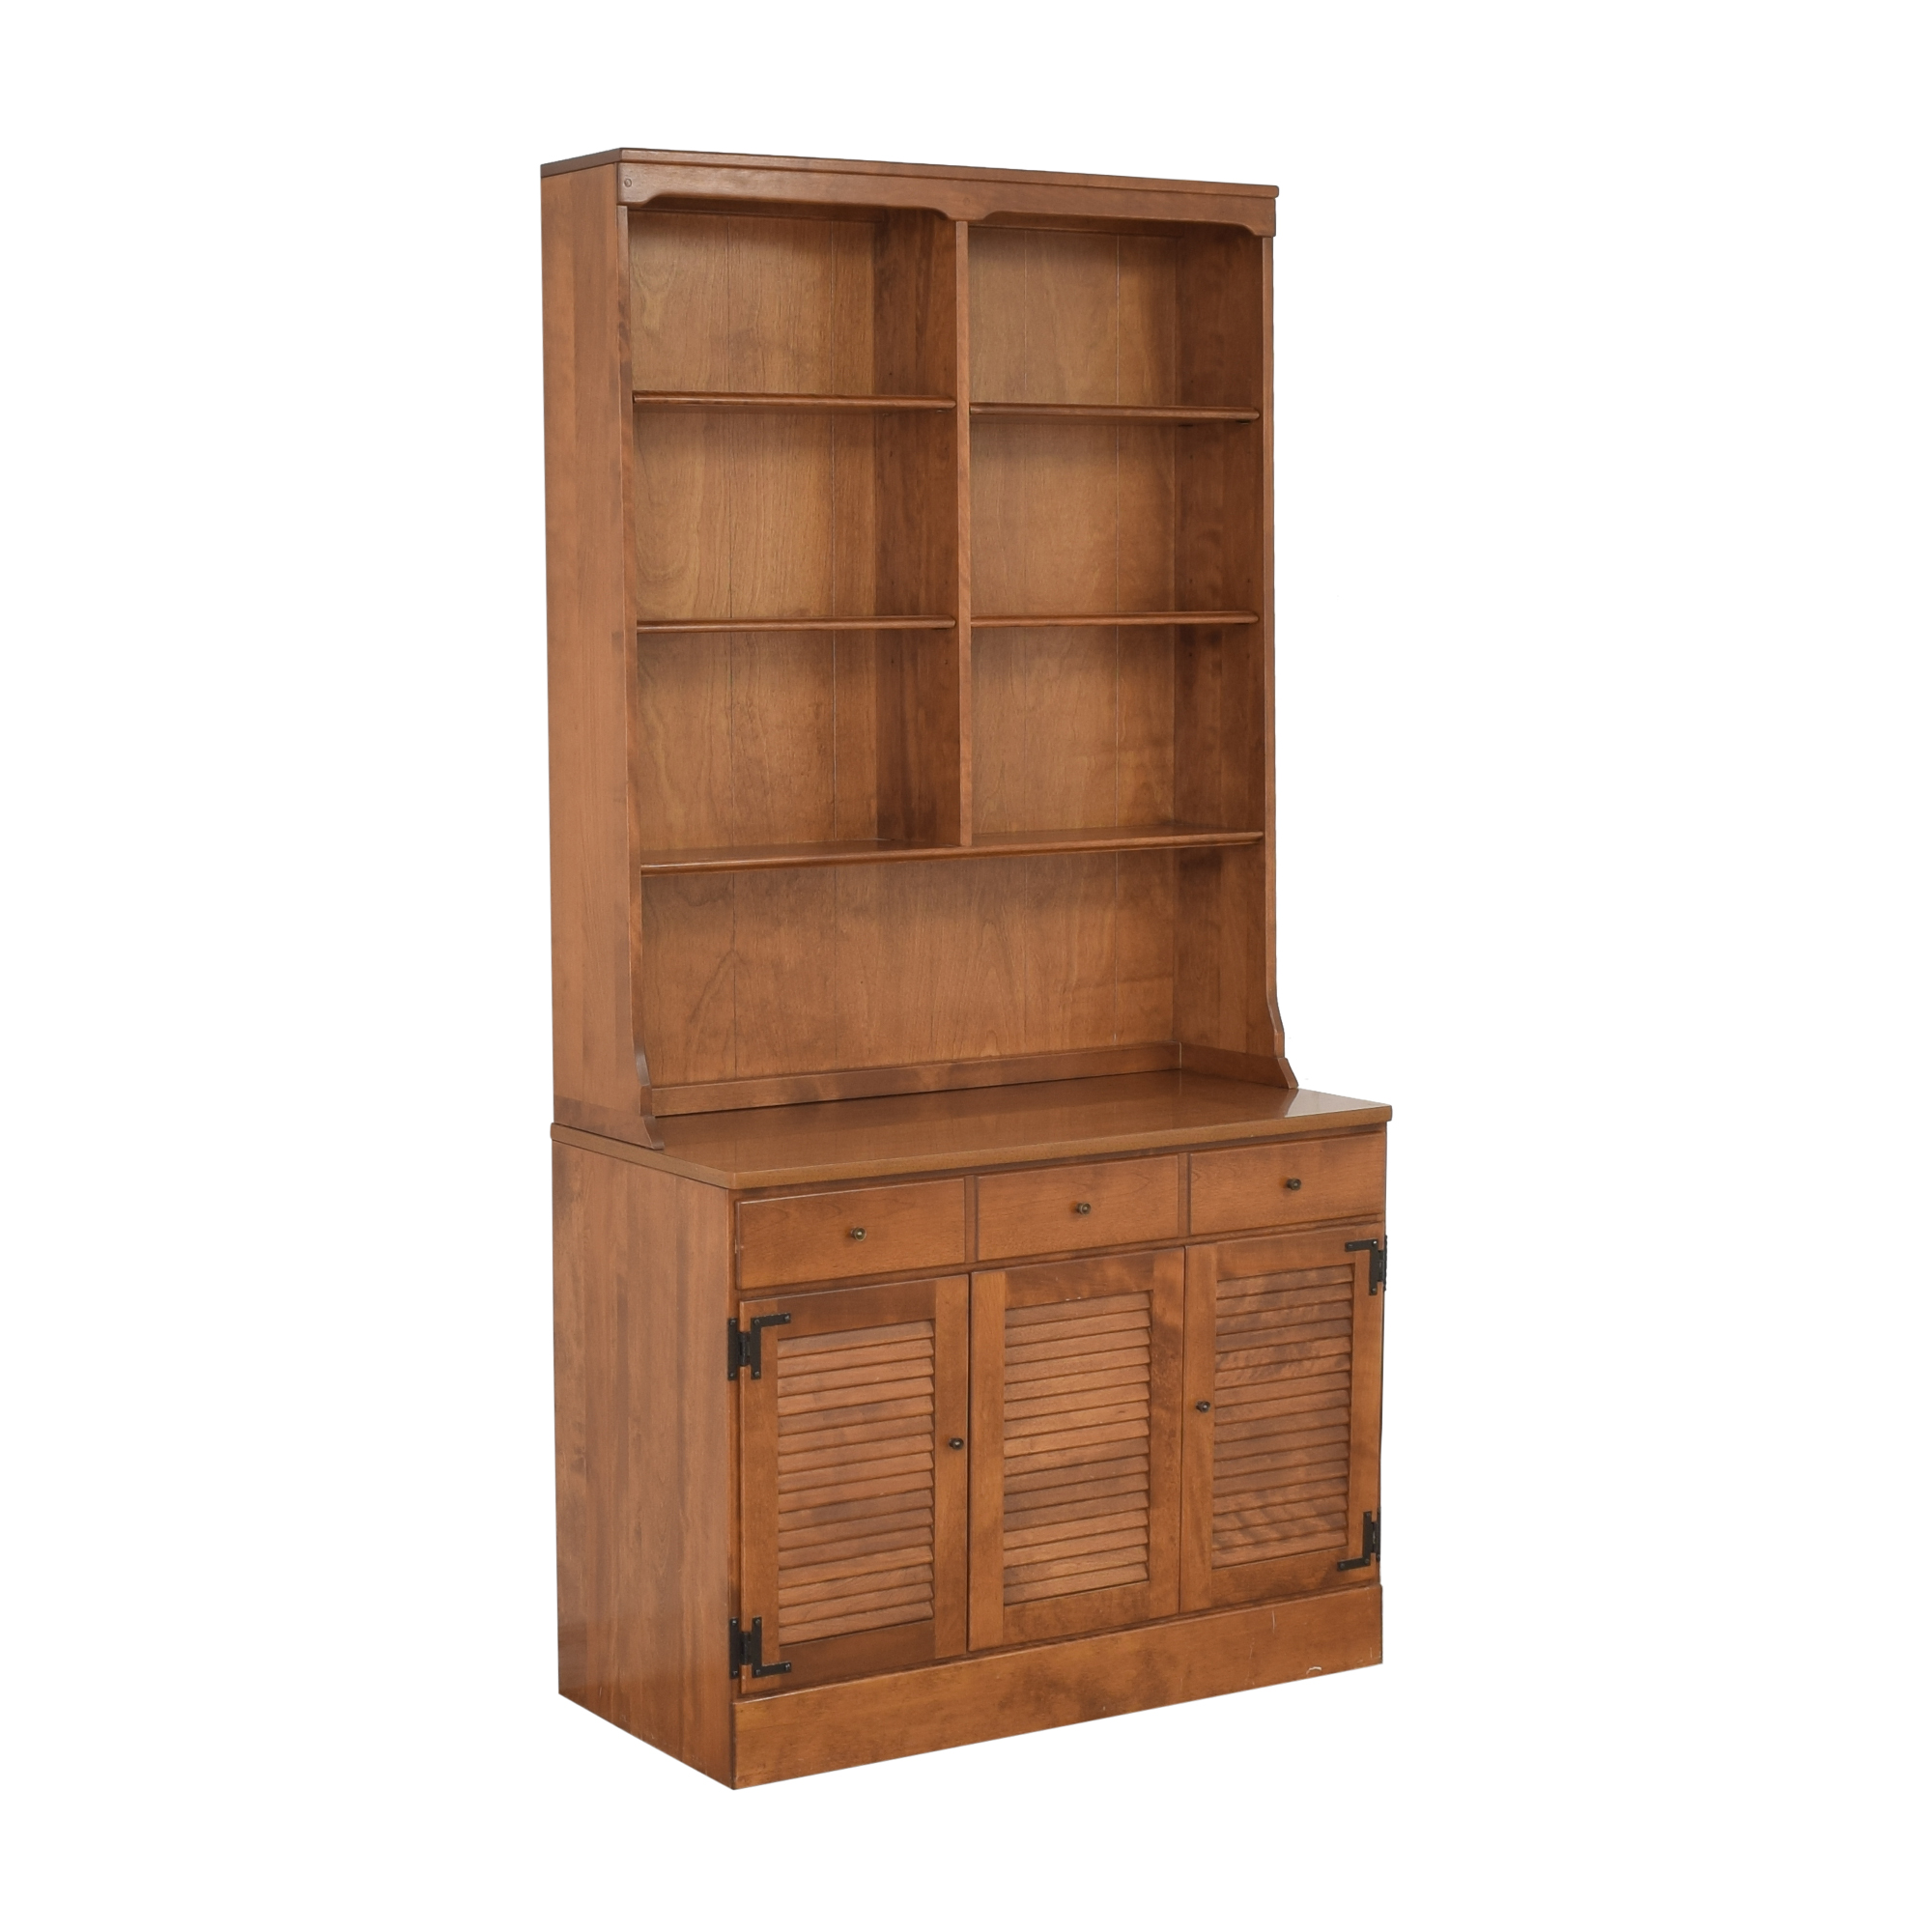 Ethan Allen Ethan Allen Cabinet with Hutch coupon